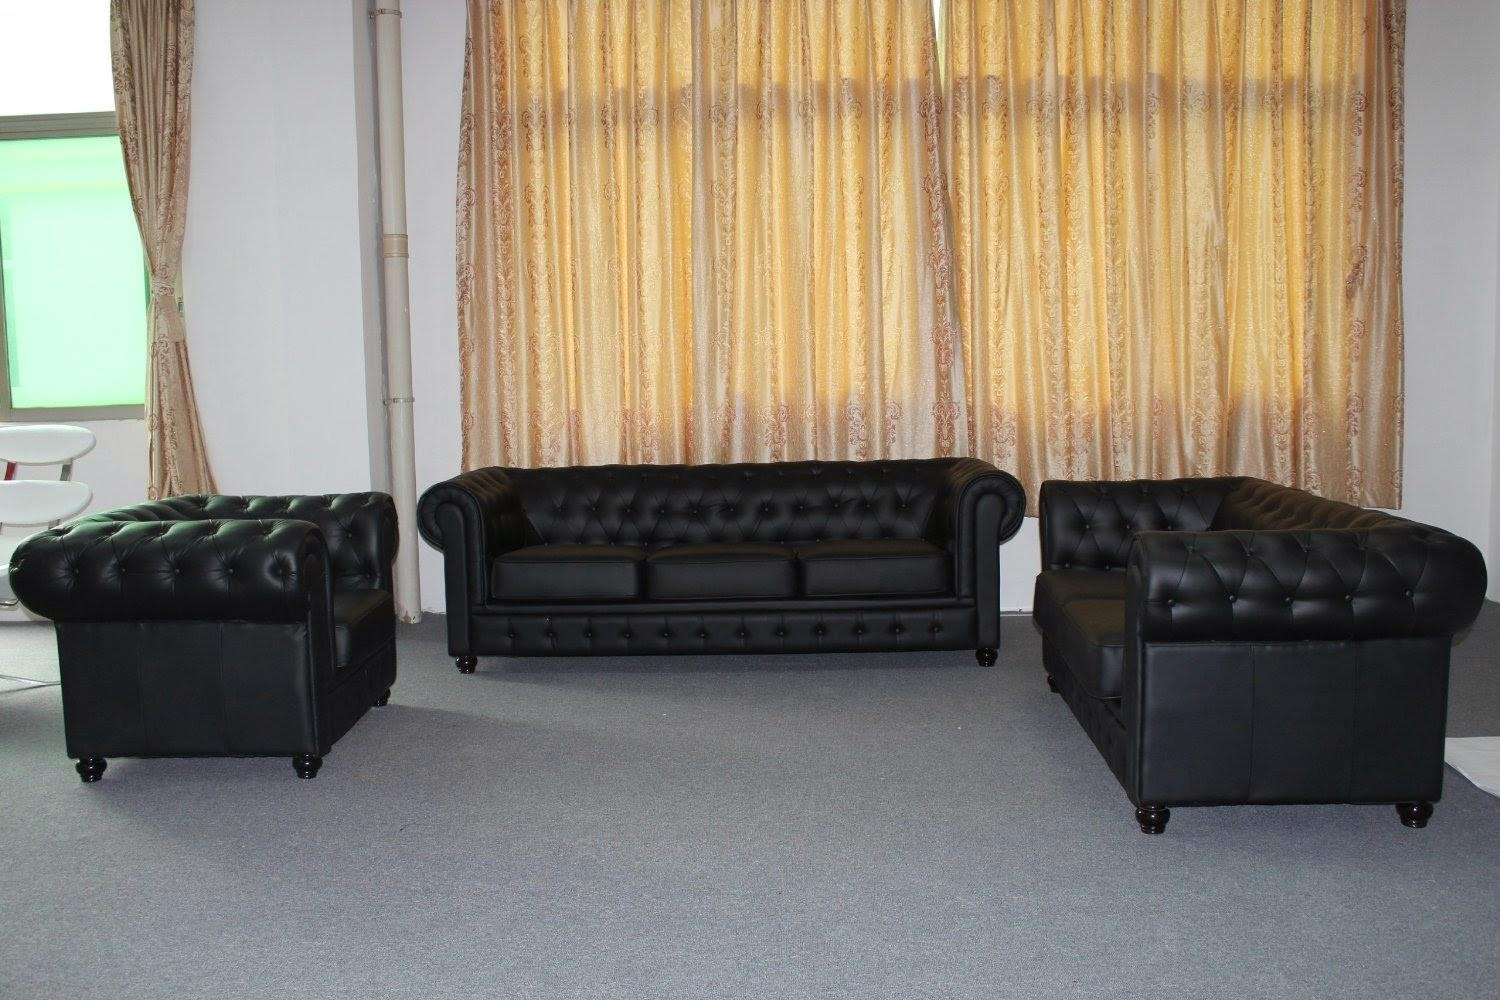 Chesterfield Sofa For Chesterfield Sofas And Chairs (View 17 of 20)